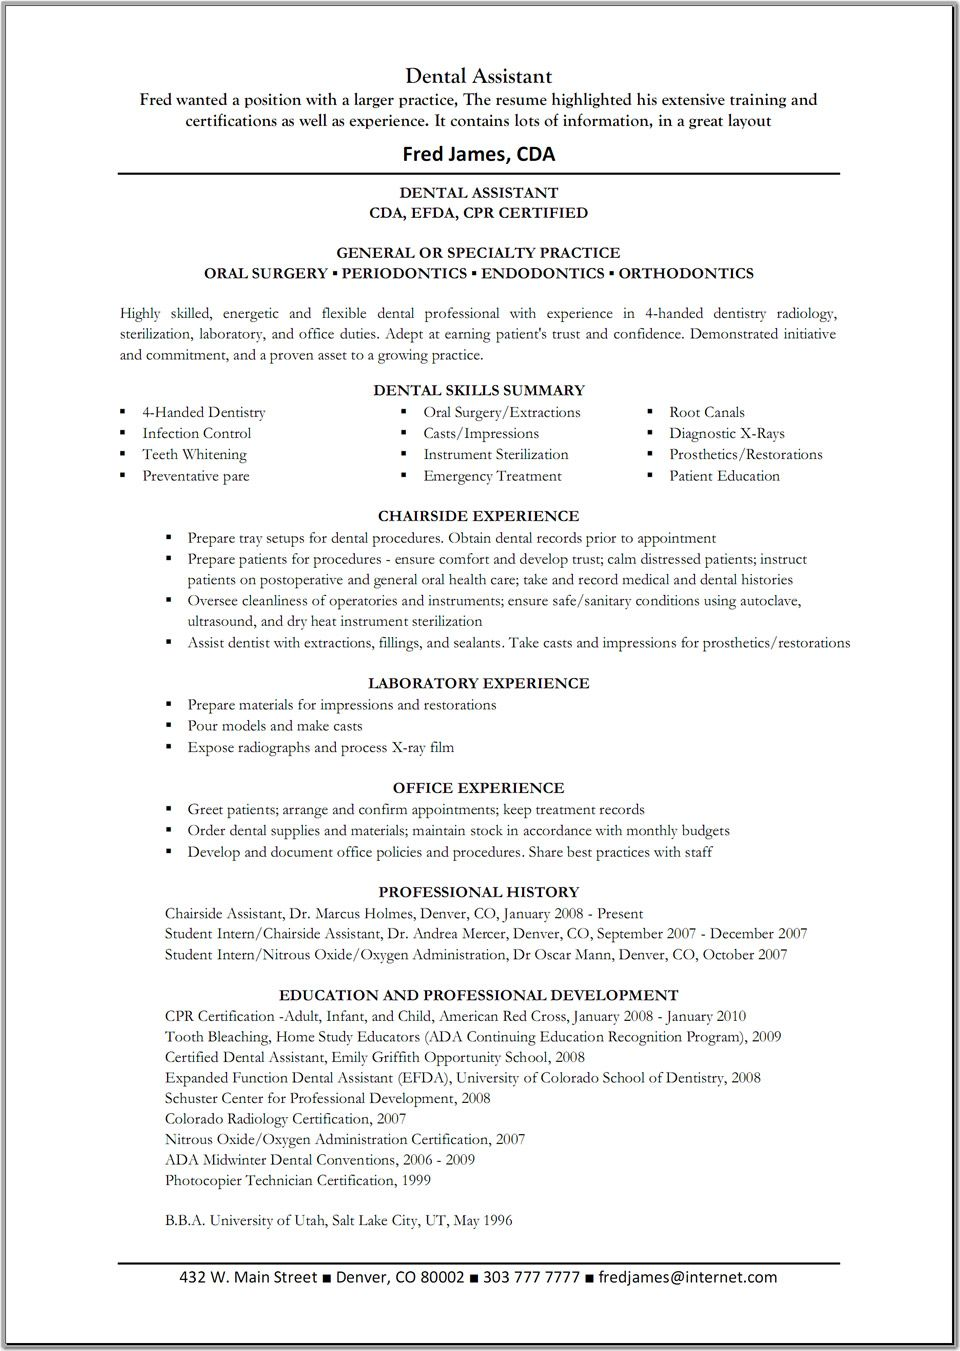 Dental Assistant Resume Template | Great Resume Templates  Dental Assistant Resume Samples